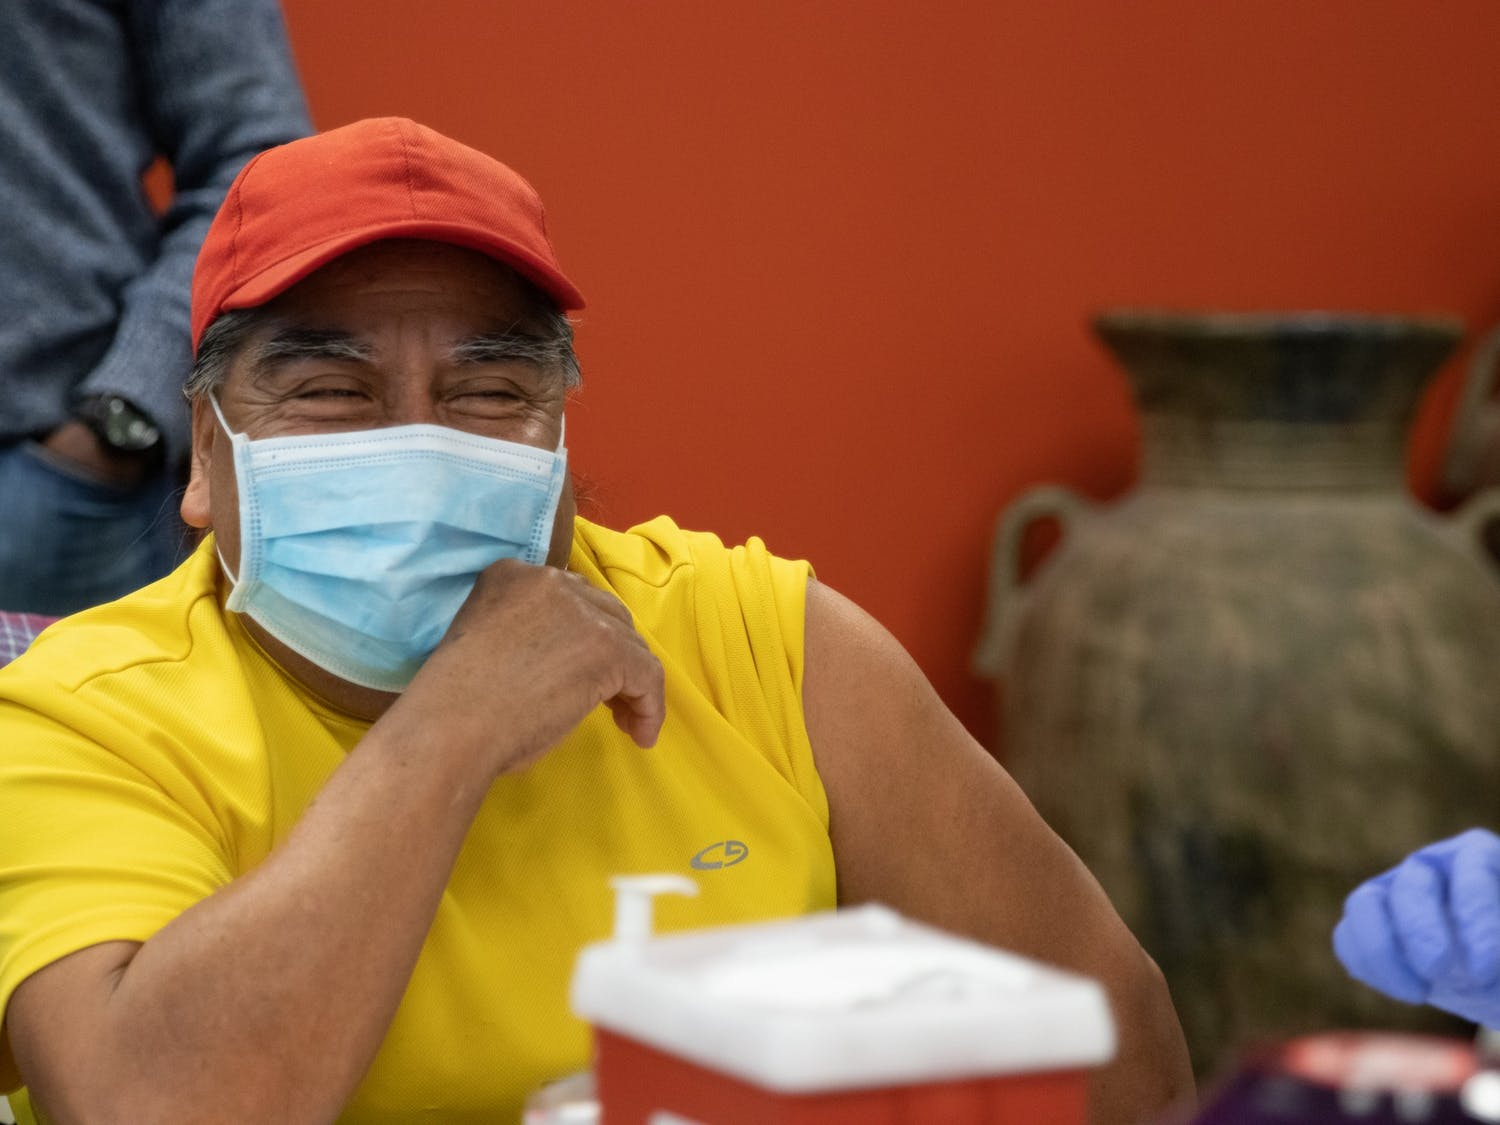 Rocendo Rosas, an immigrant originally from Oaxaca, Mexico, laughs as he waits to receive a COVID-19 vaccine at La Semilla's vaccination event, Feb. 20, 2021.